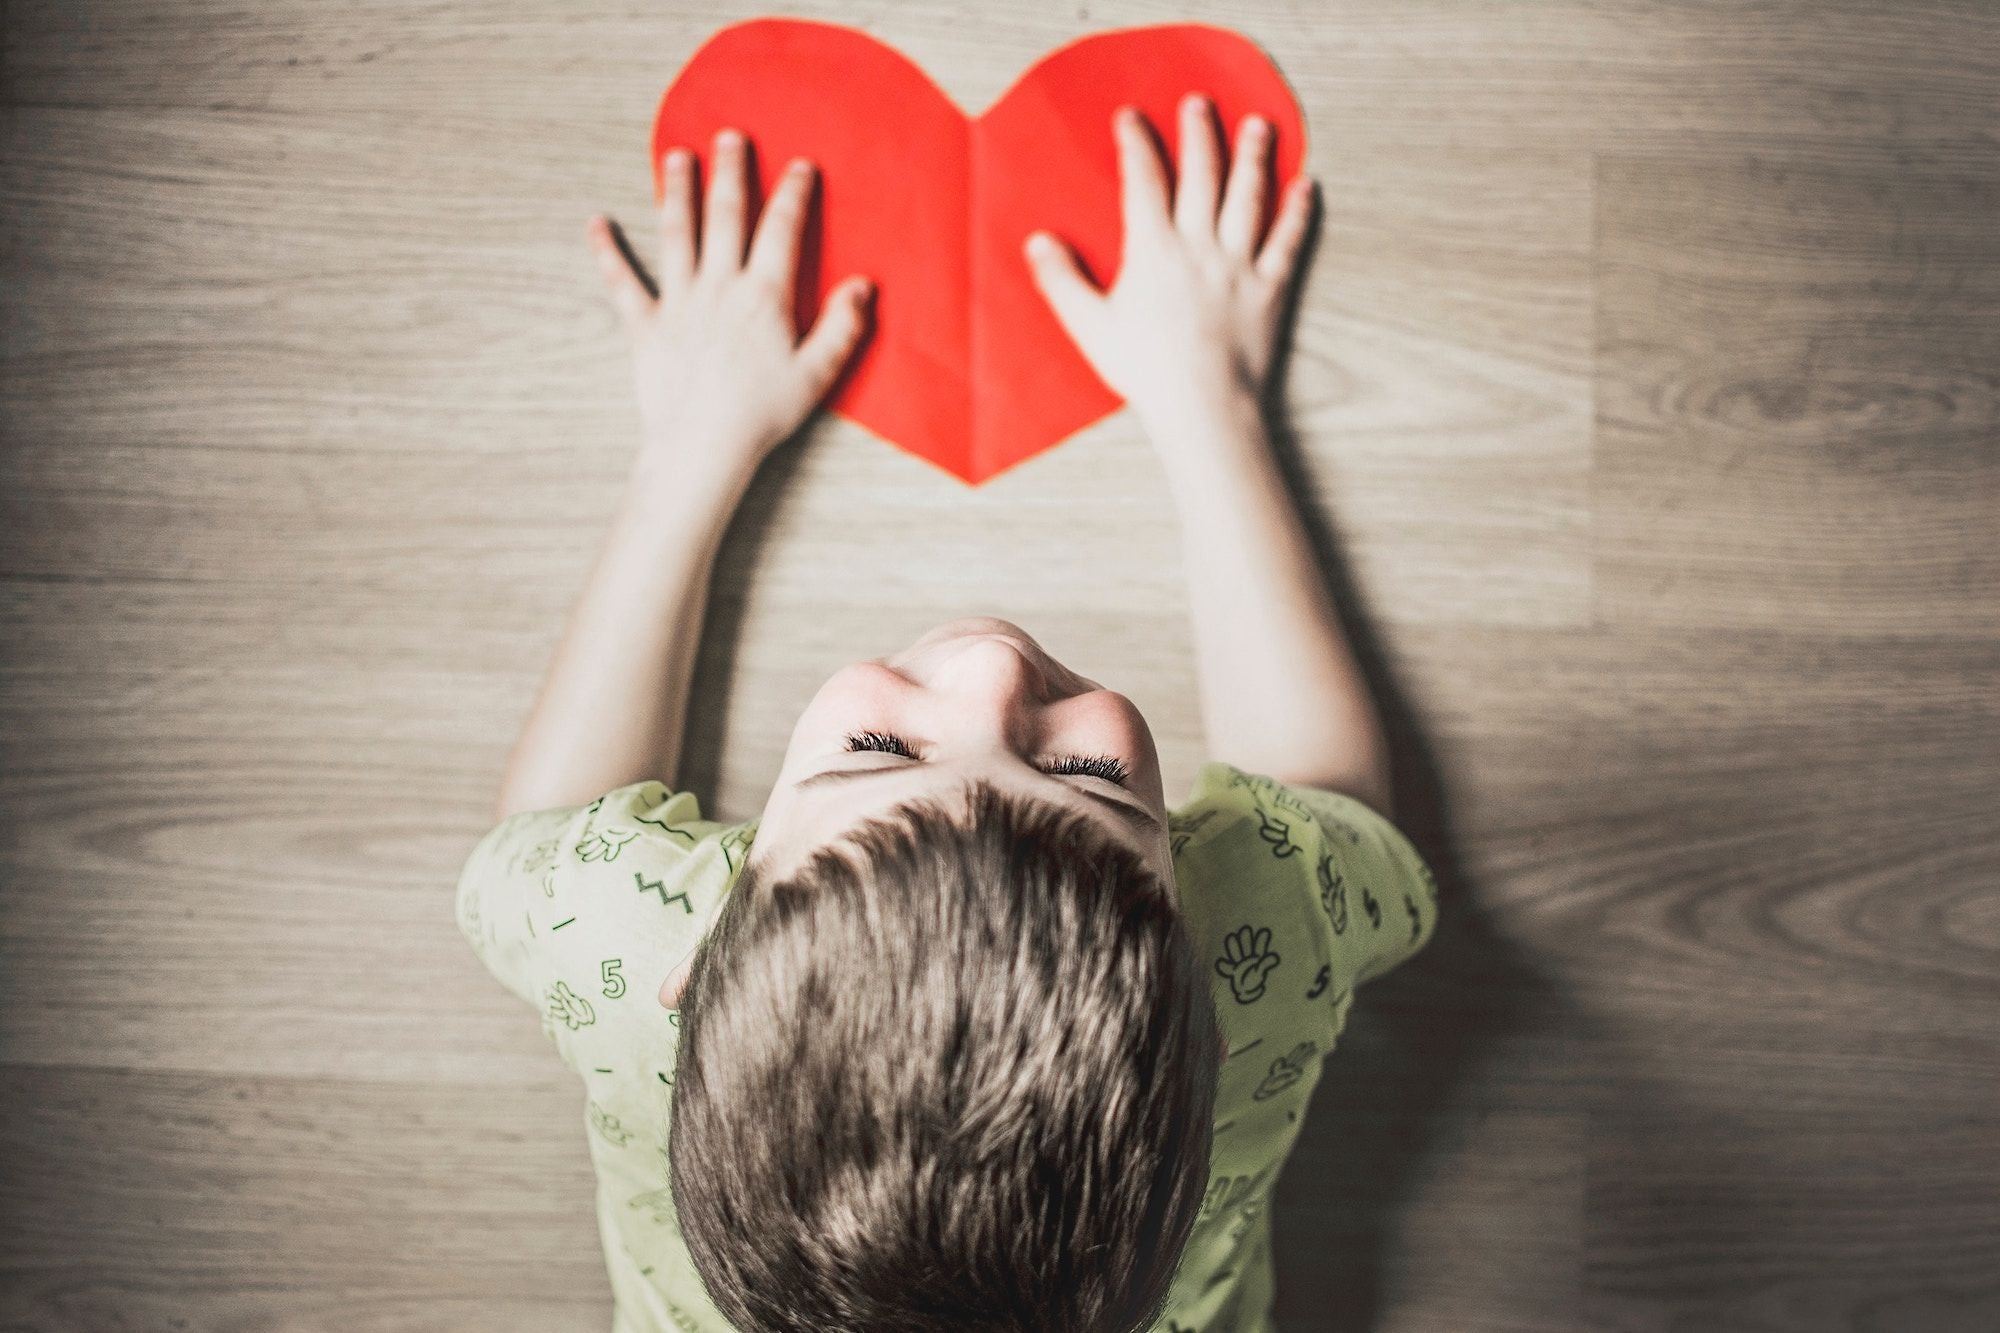 How to help a child suffering from ACEs - A young boy plays with a paper heart.